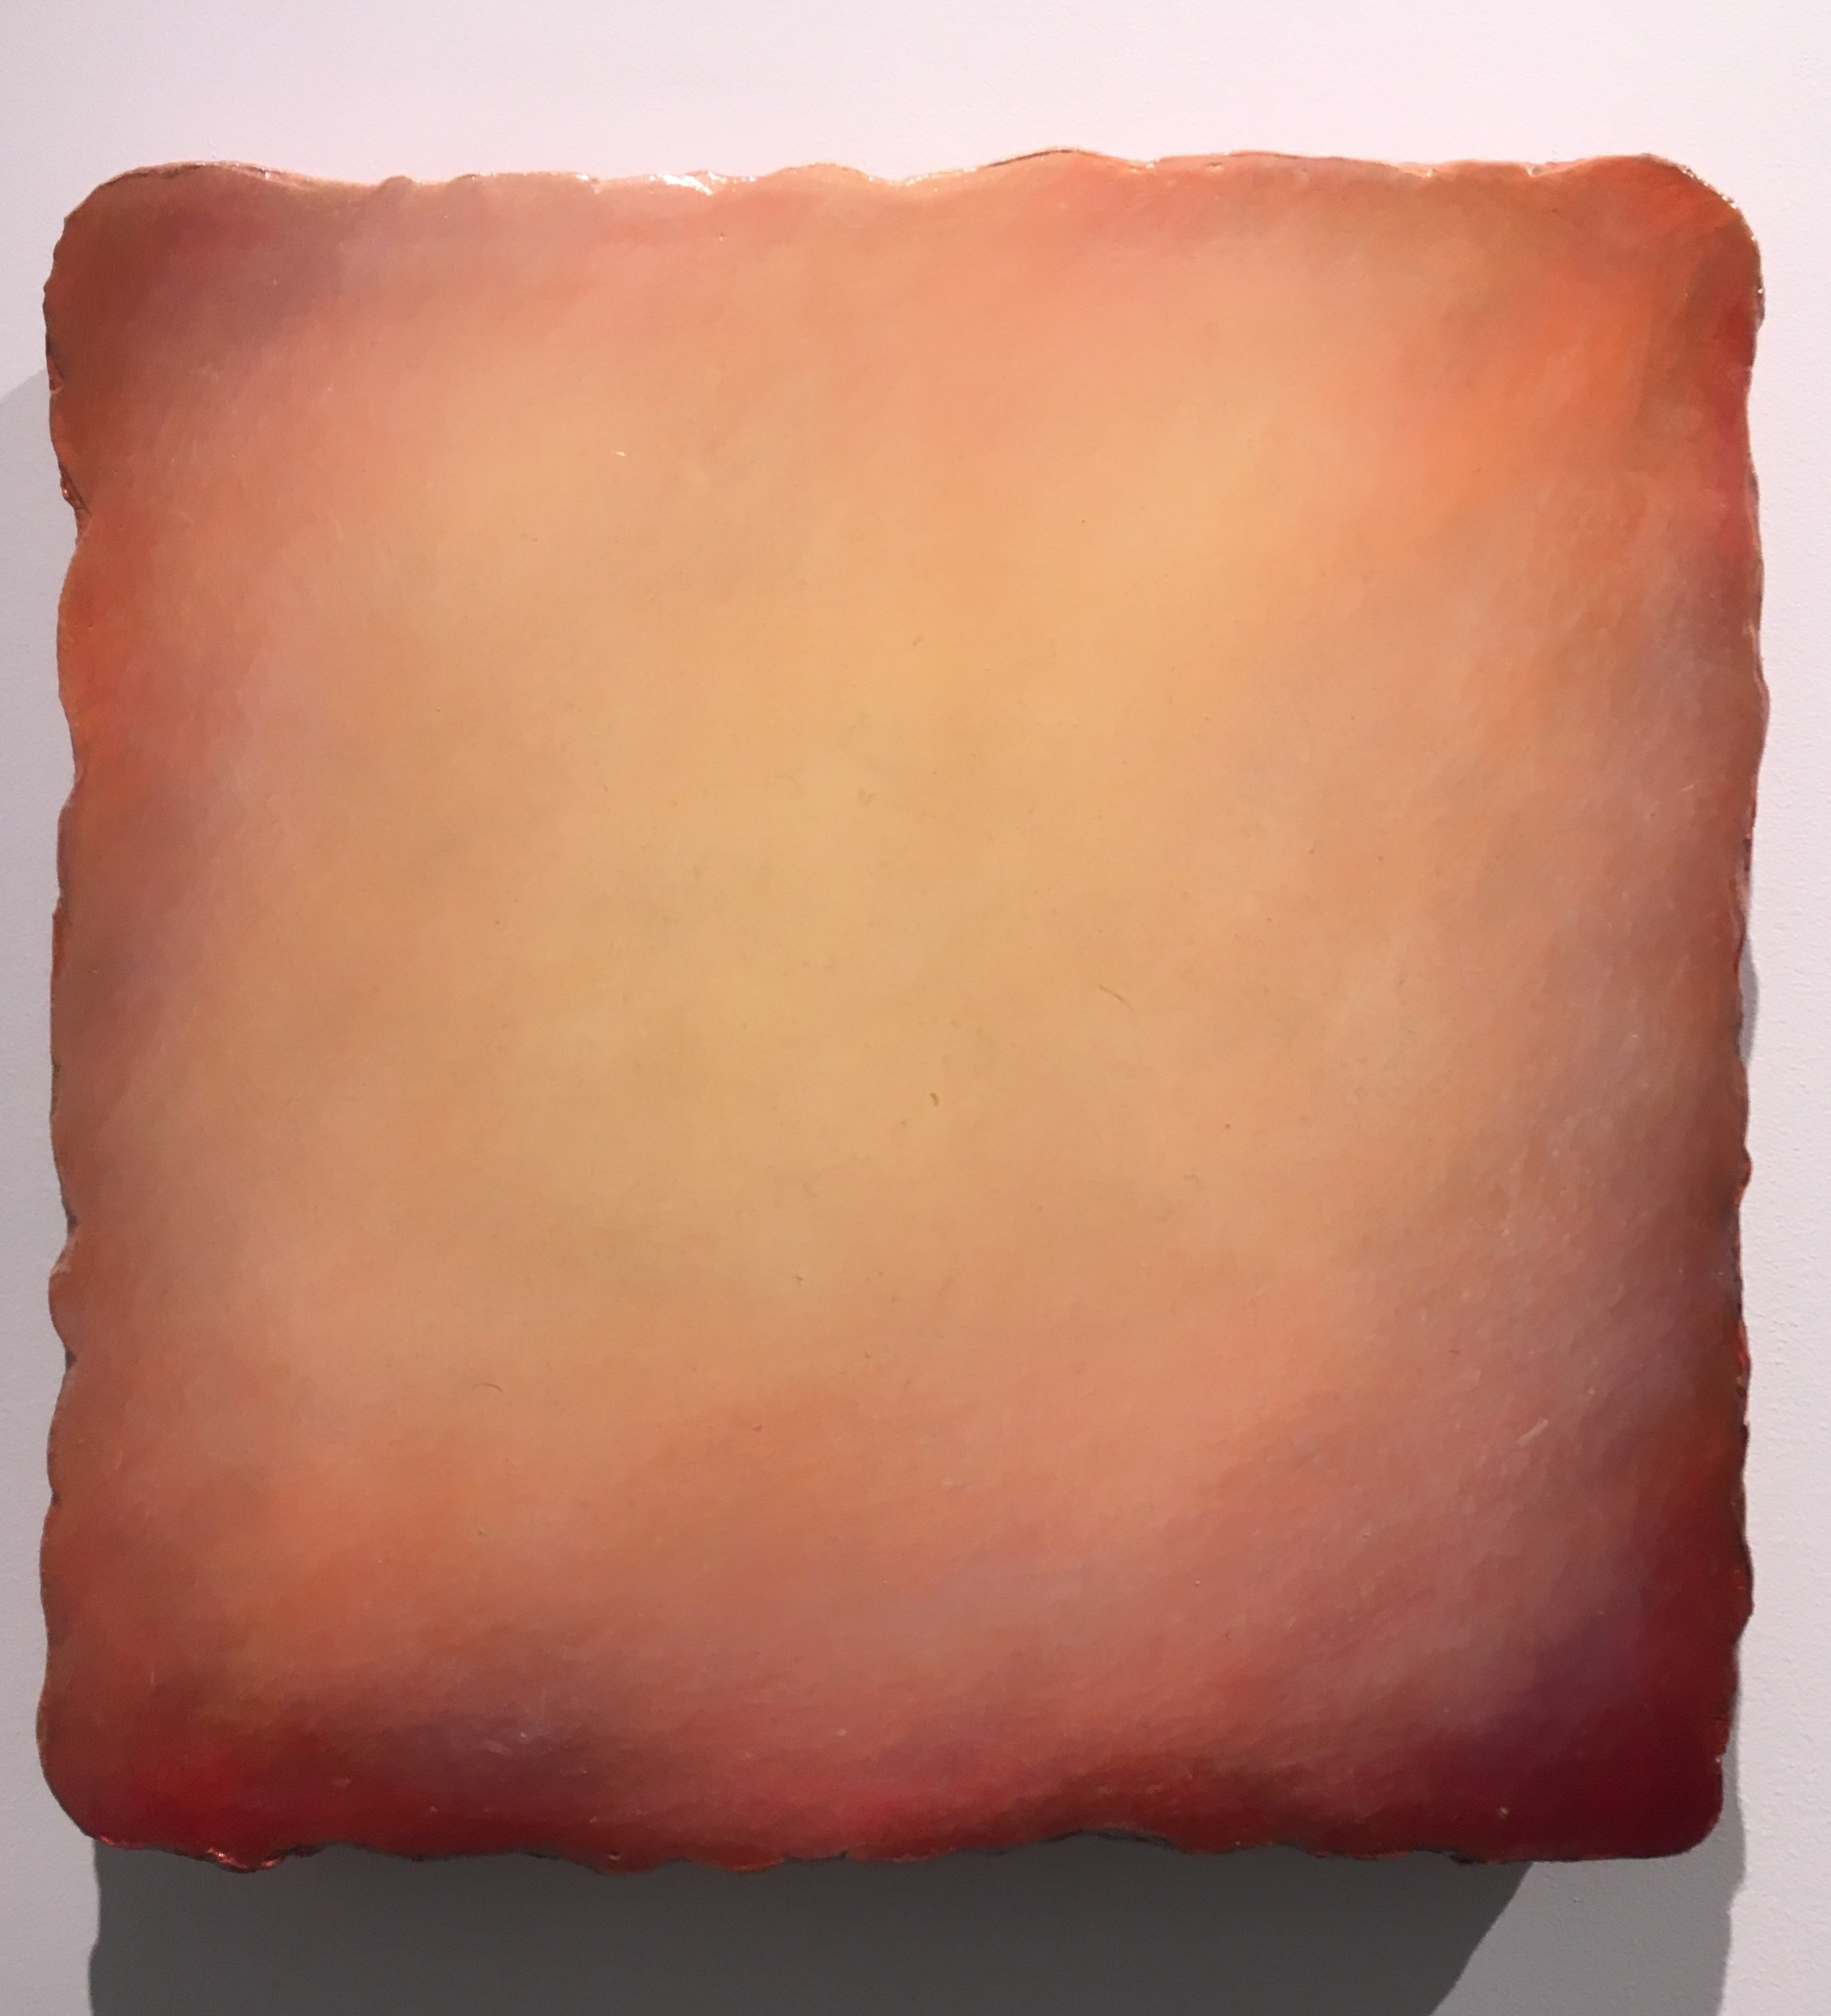 untitled #2817, 2015 oil & gesso on canvas, 13 x 13 inches